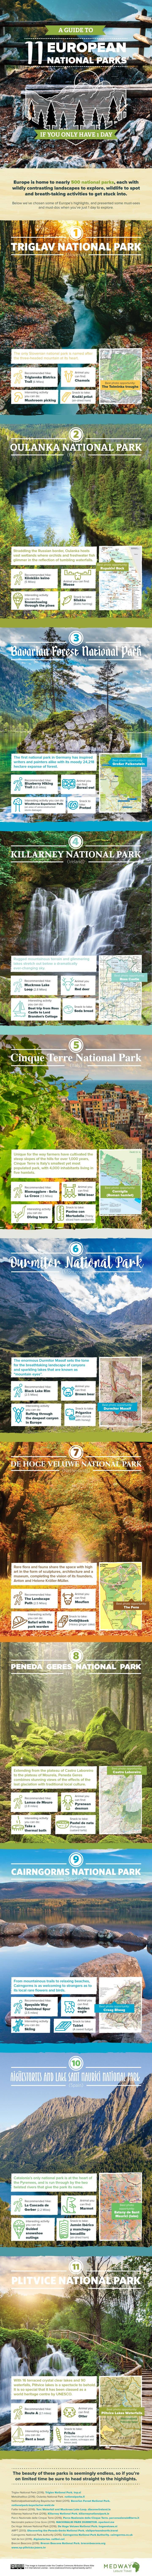 A Guide to 11 European National Parks (if You Only Have a Day)